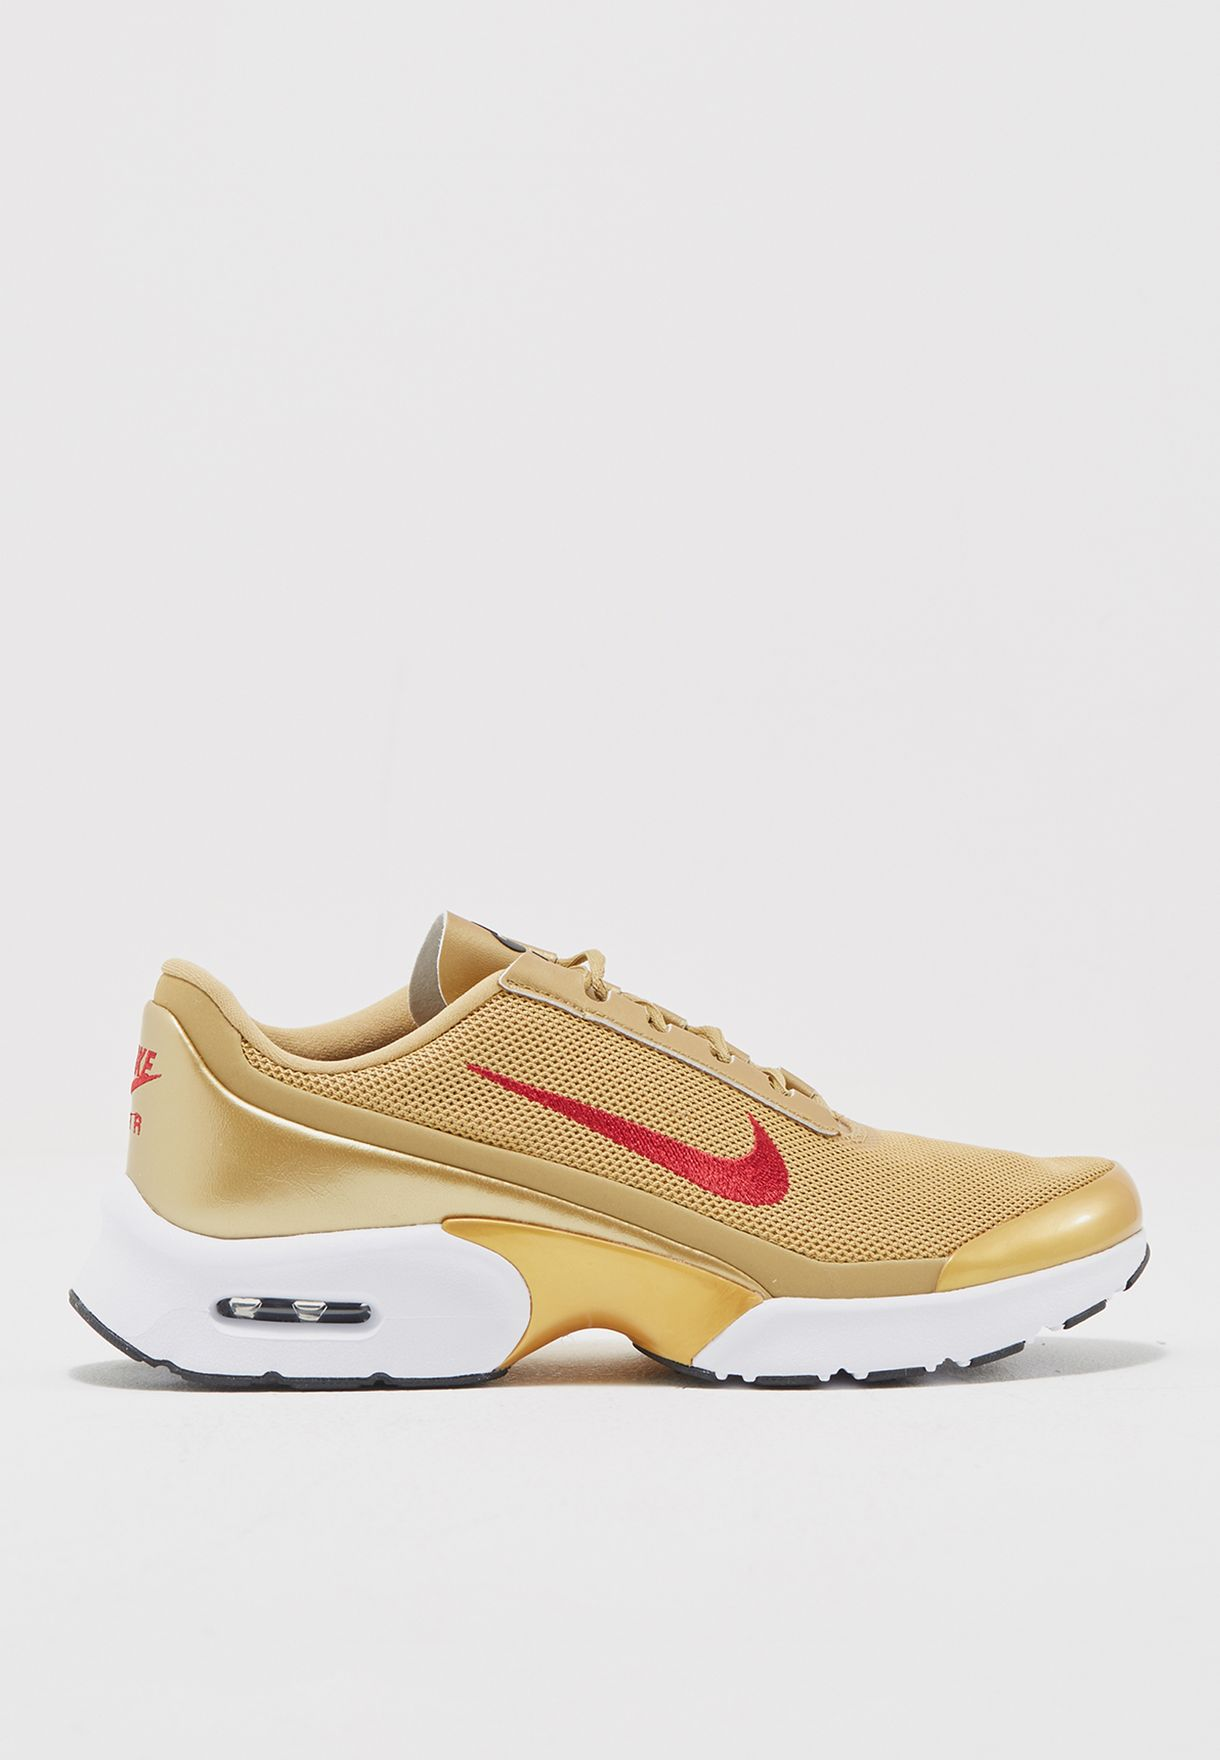 d77a0077b7 Shop Nike gold Air Max Jewell QS 910313-700 for Women in Saudi ...